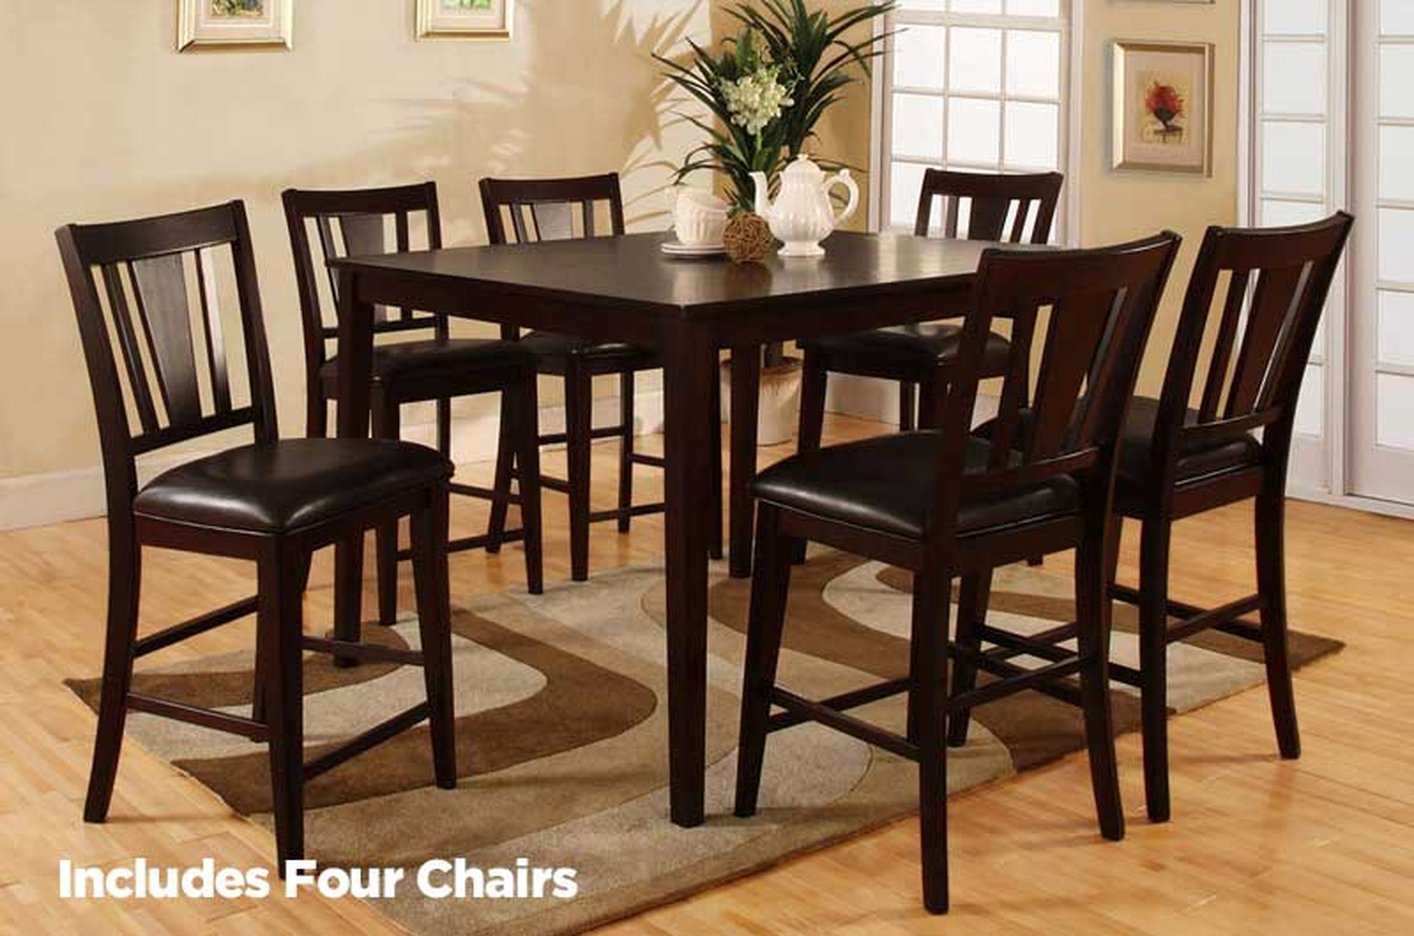 Bridgette 5pc Pub Table and Chair Set & Bridgette 5pc Pub Table and Chair Set - Steal-A-Sofa Furniture ...